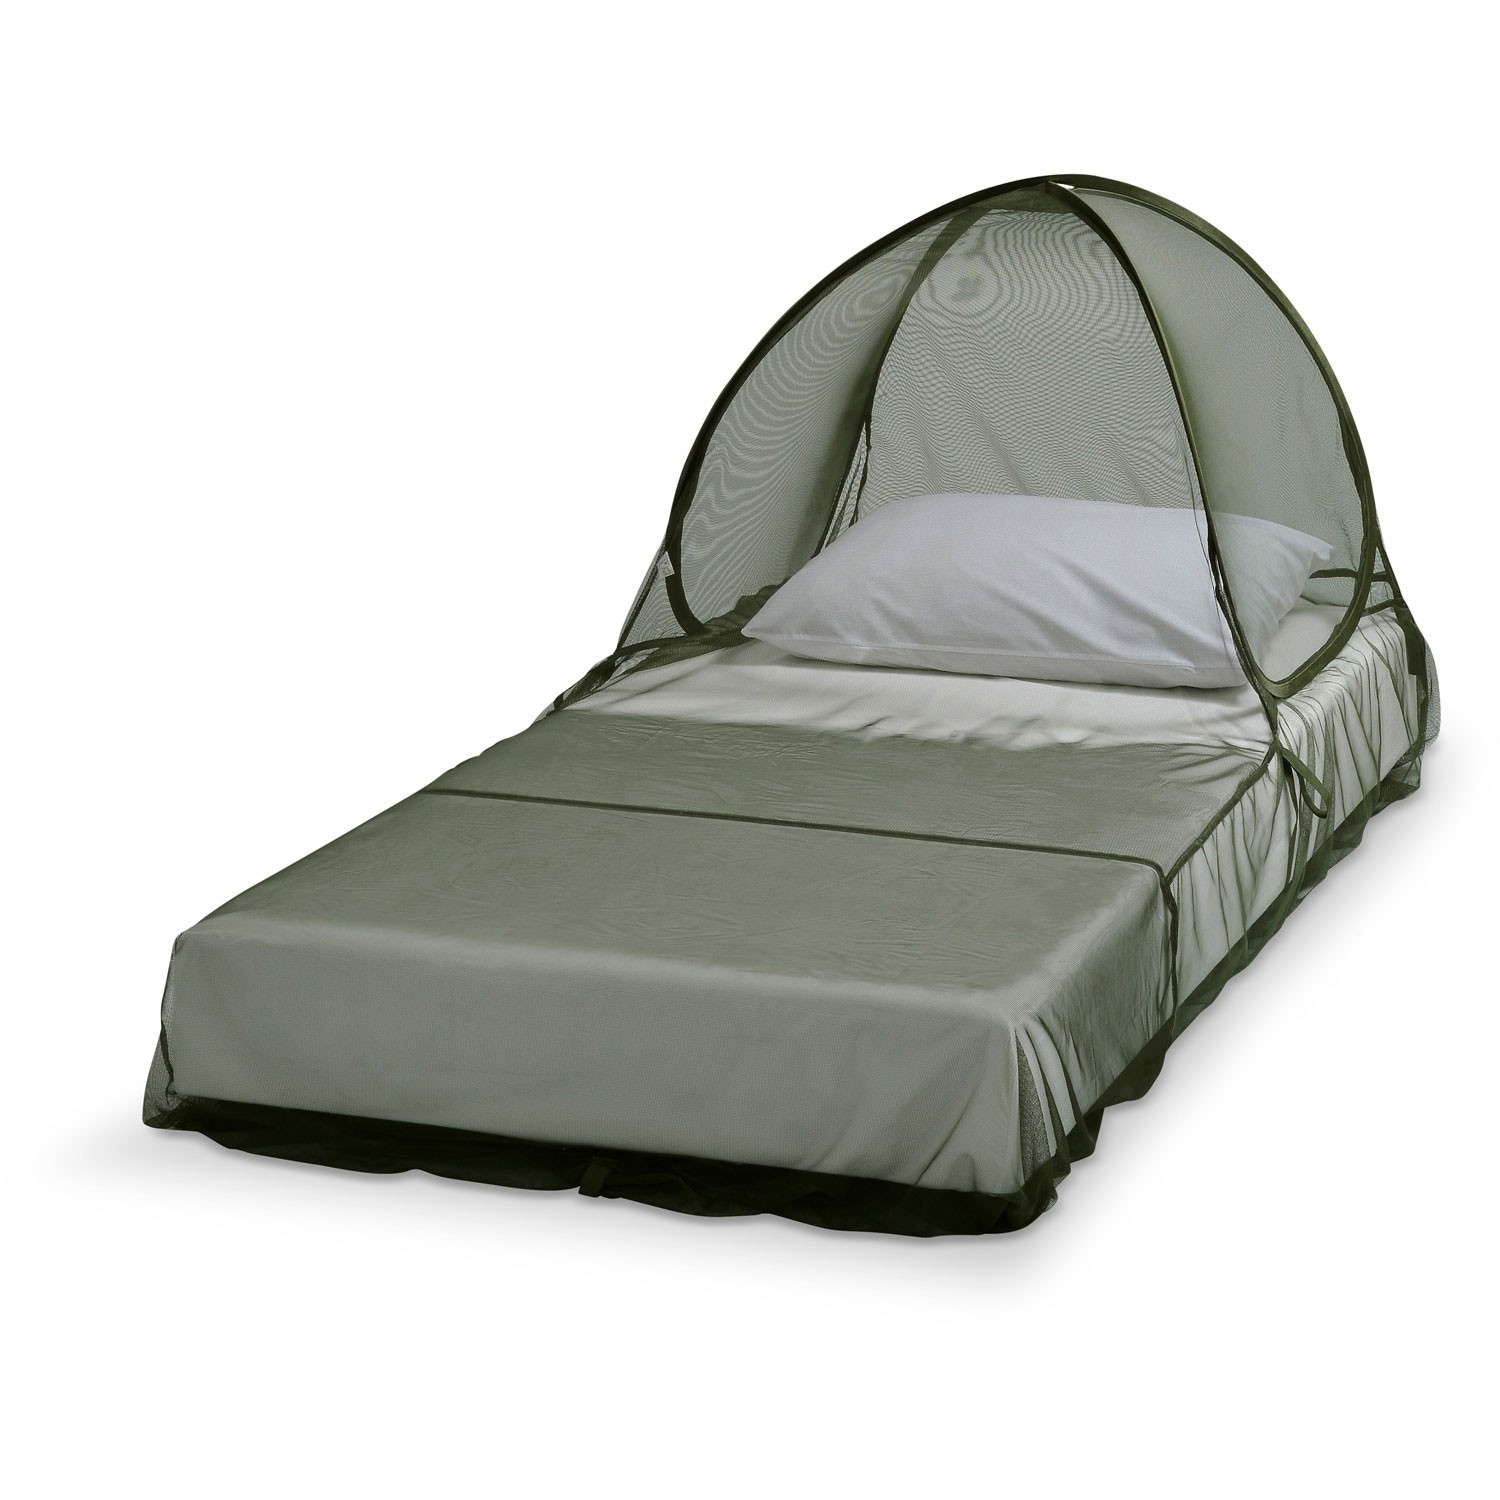 Care Plus Pop Up Dome Mosquito Net - Green